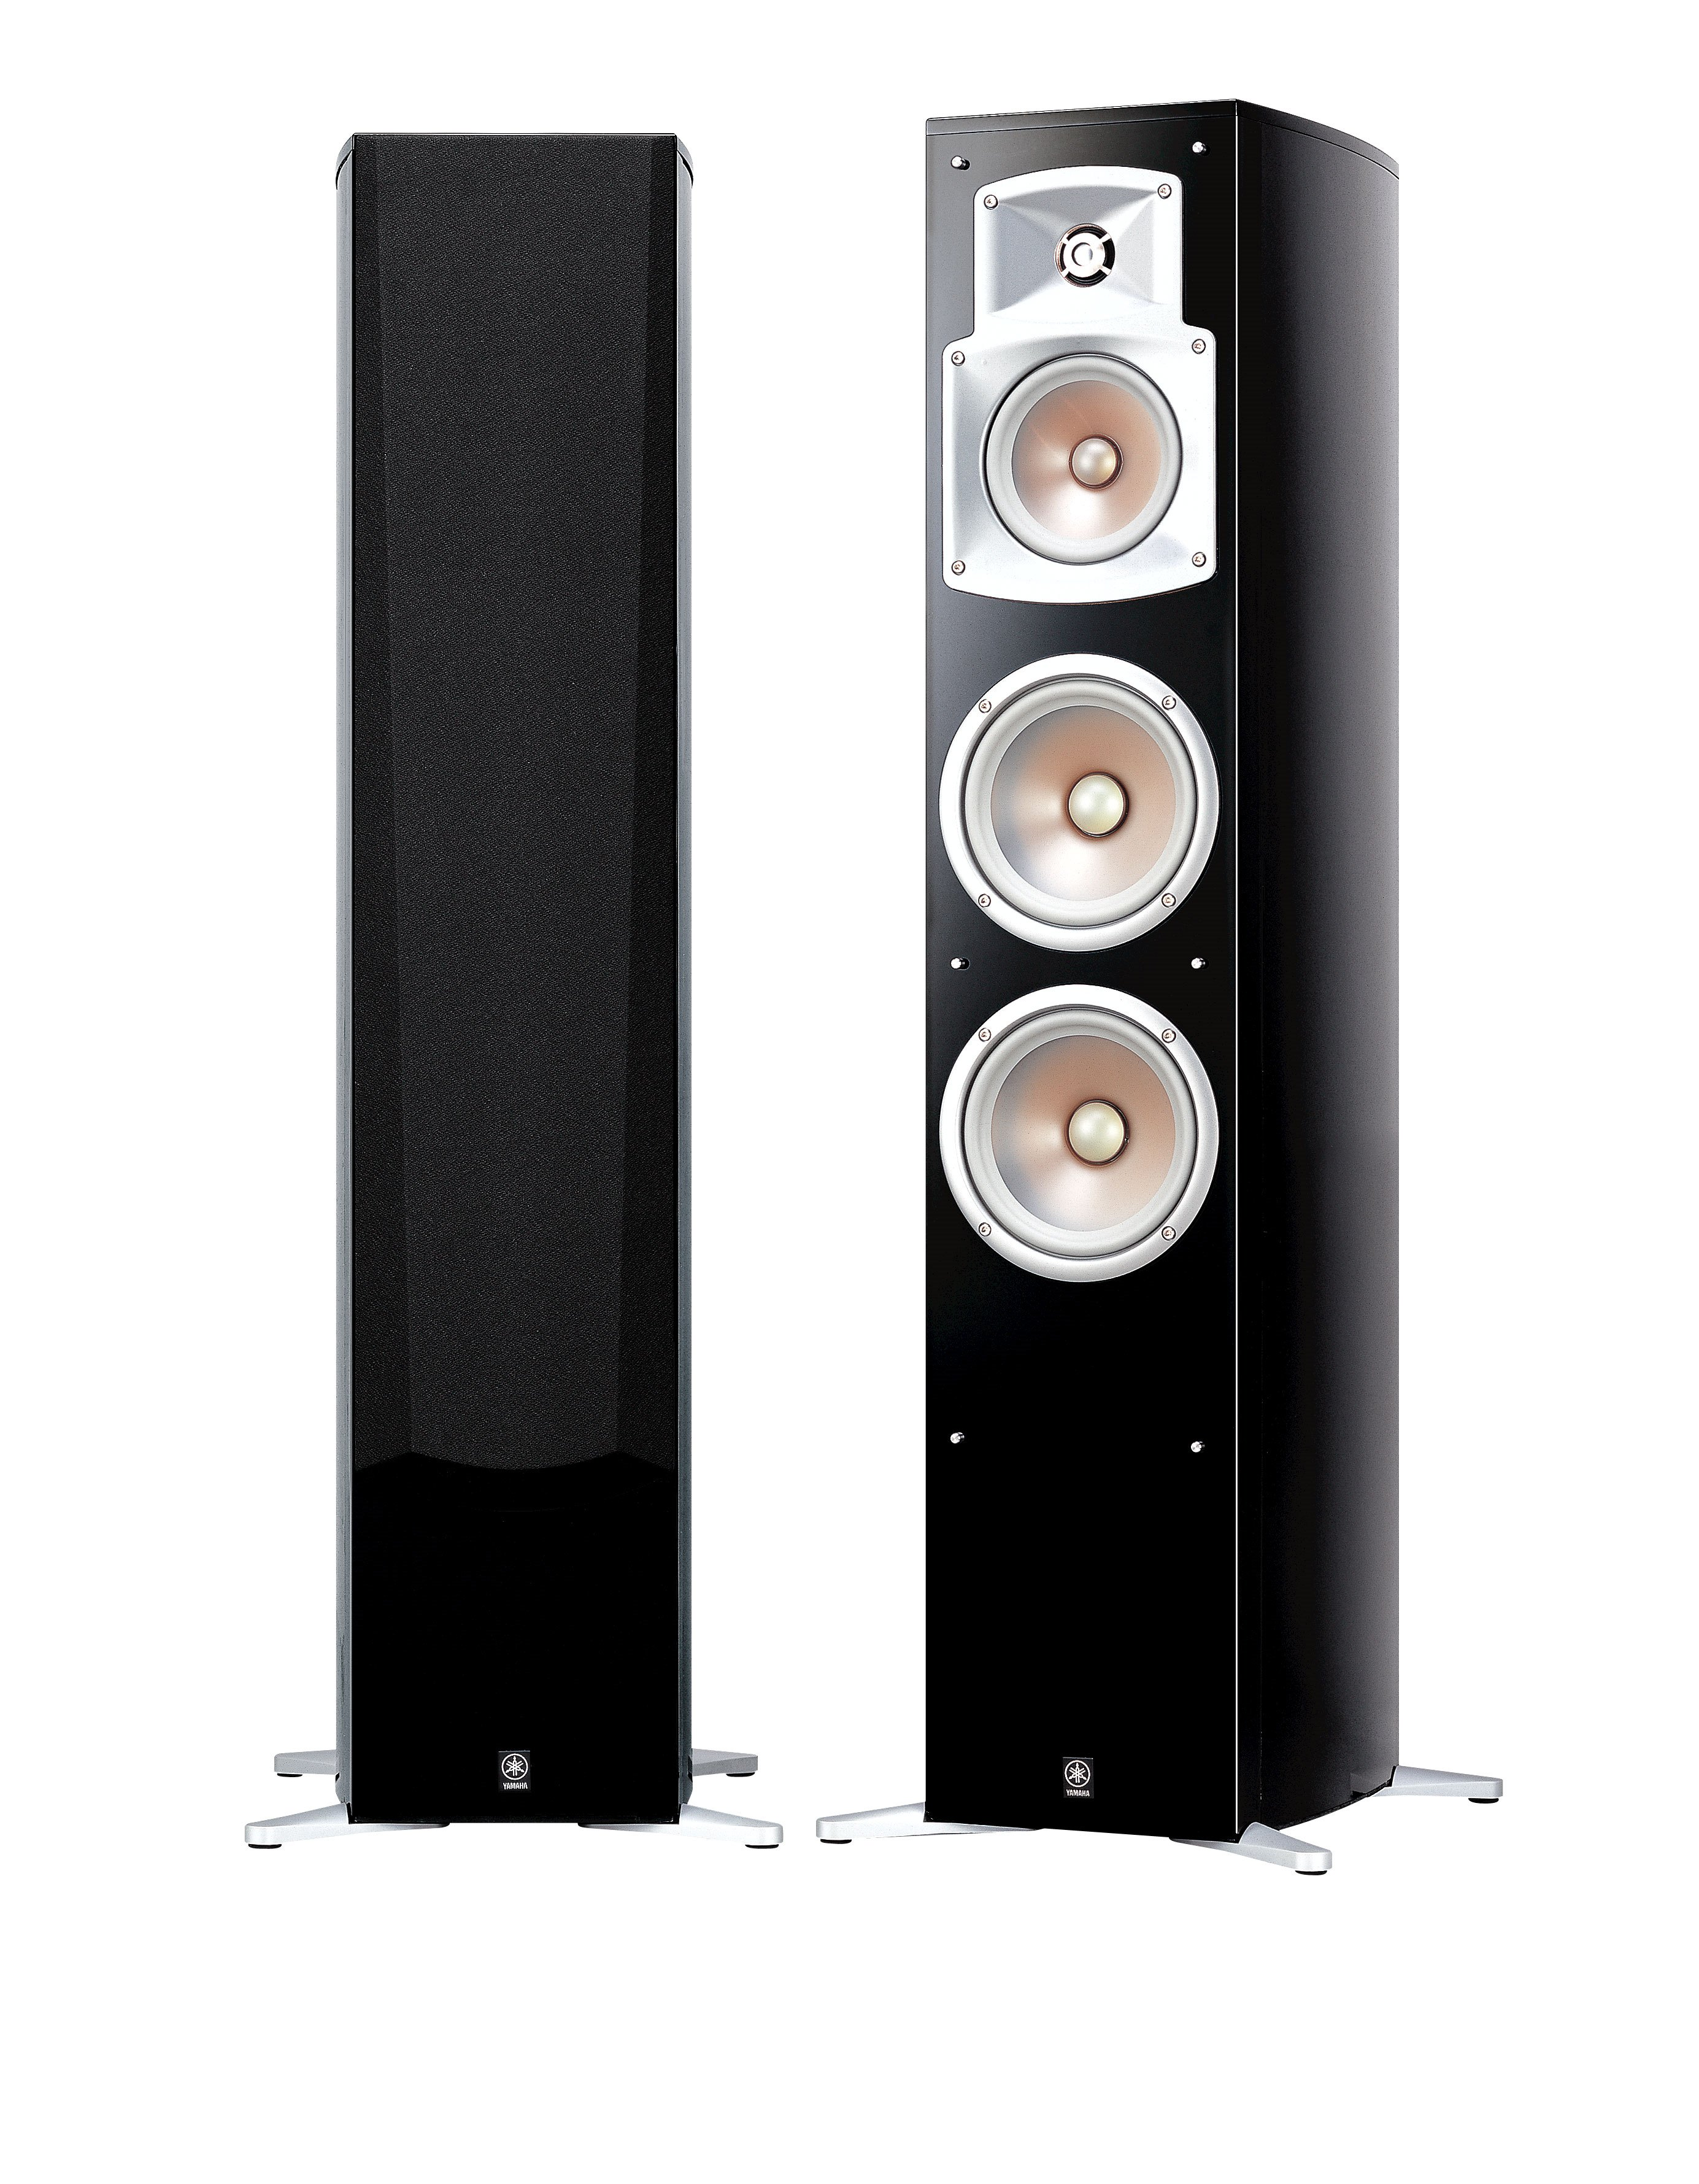 ns-555 - overview - speaker systems